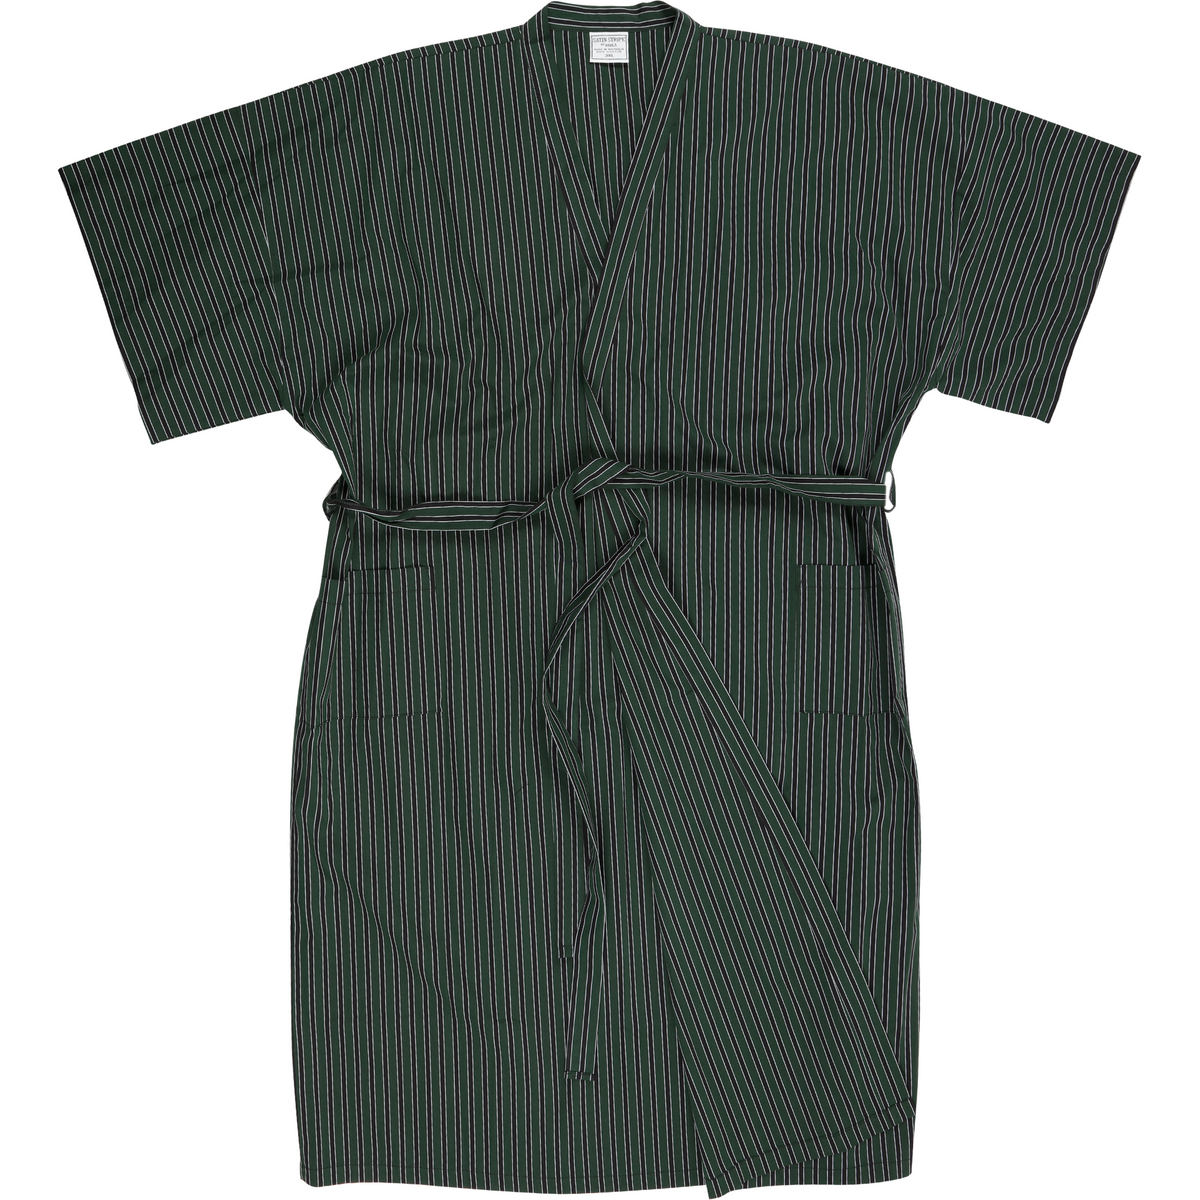 Koala Night Gown in Green Stripe - Ron Bennett Big Men's Clothing - 1